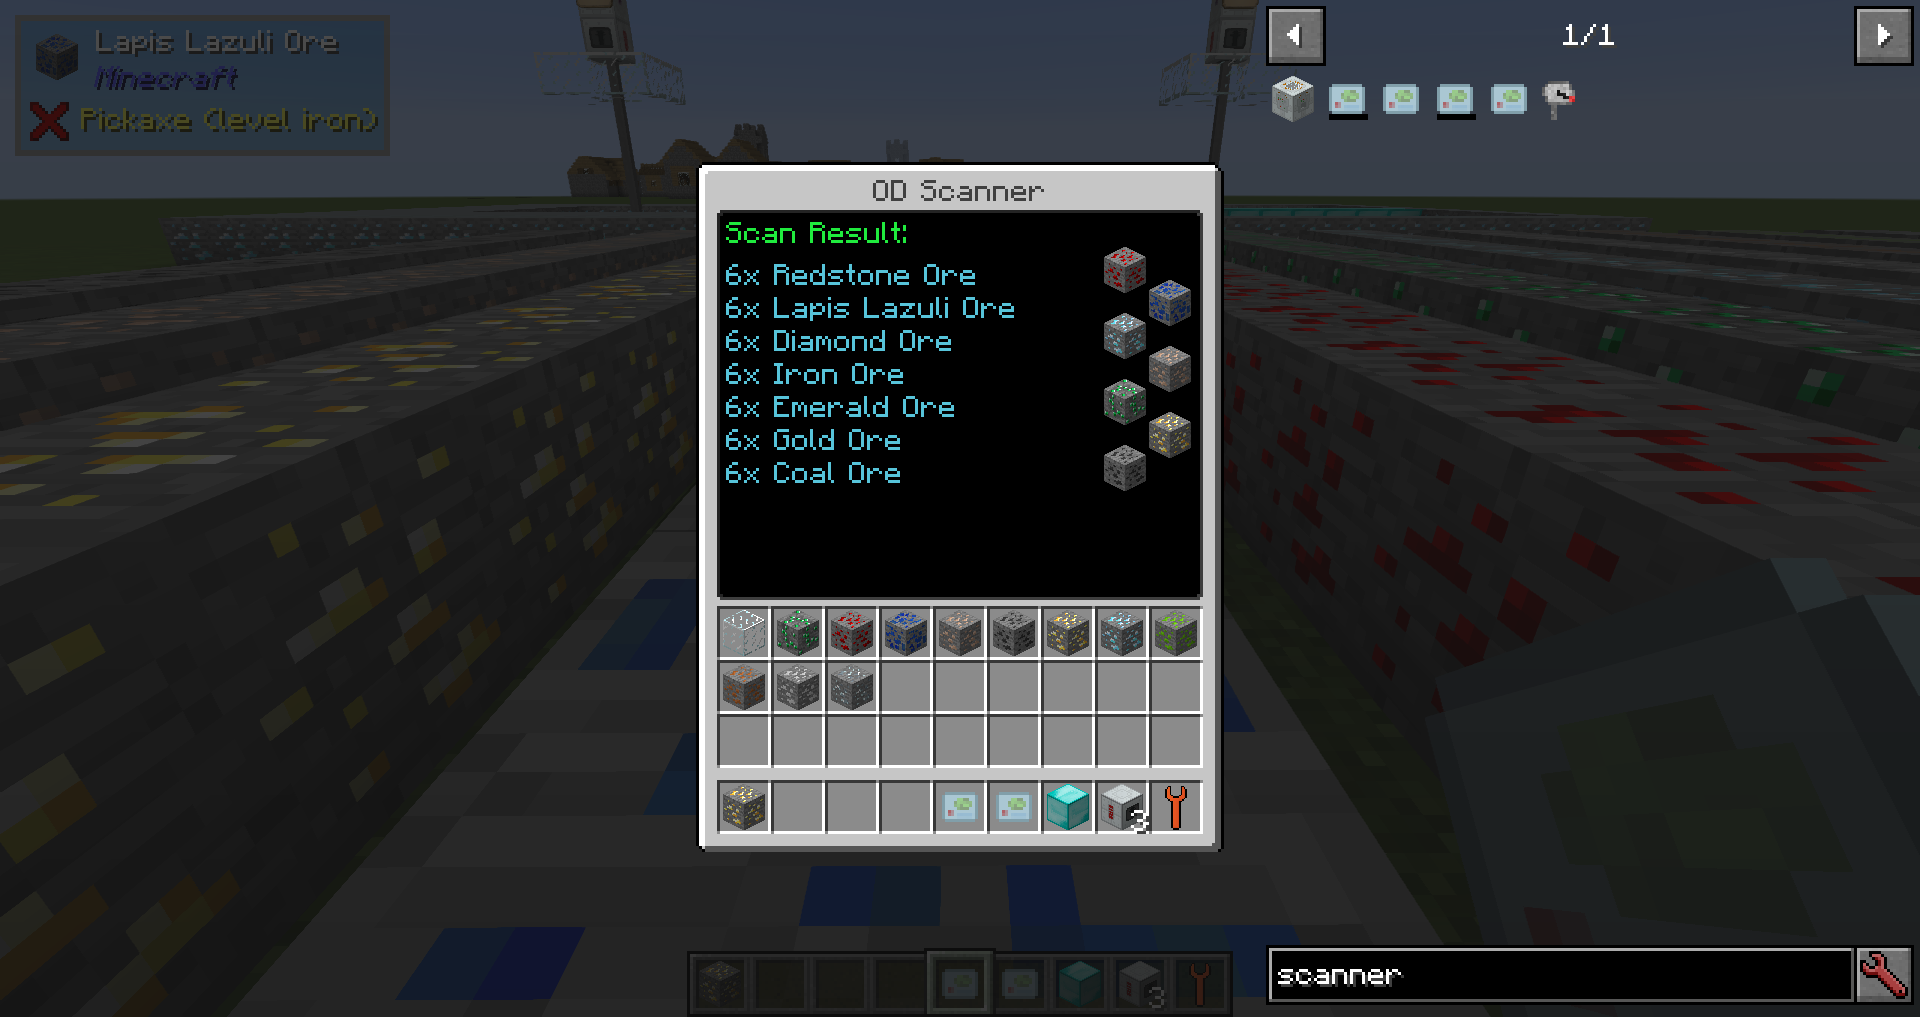 Mantisbt Minecraft Redstone Project Walkthru Digital Clock W Https File Downloadphpfile Id922typebug